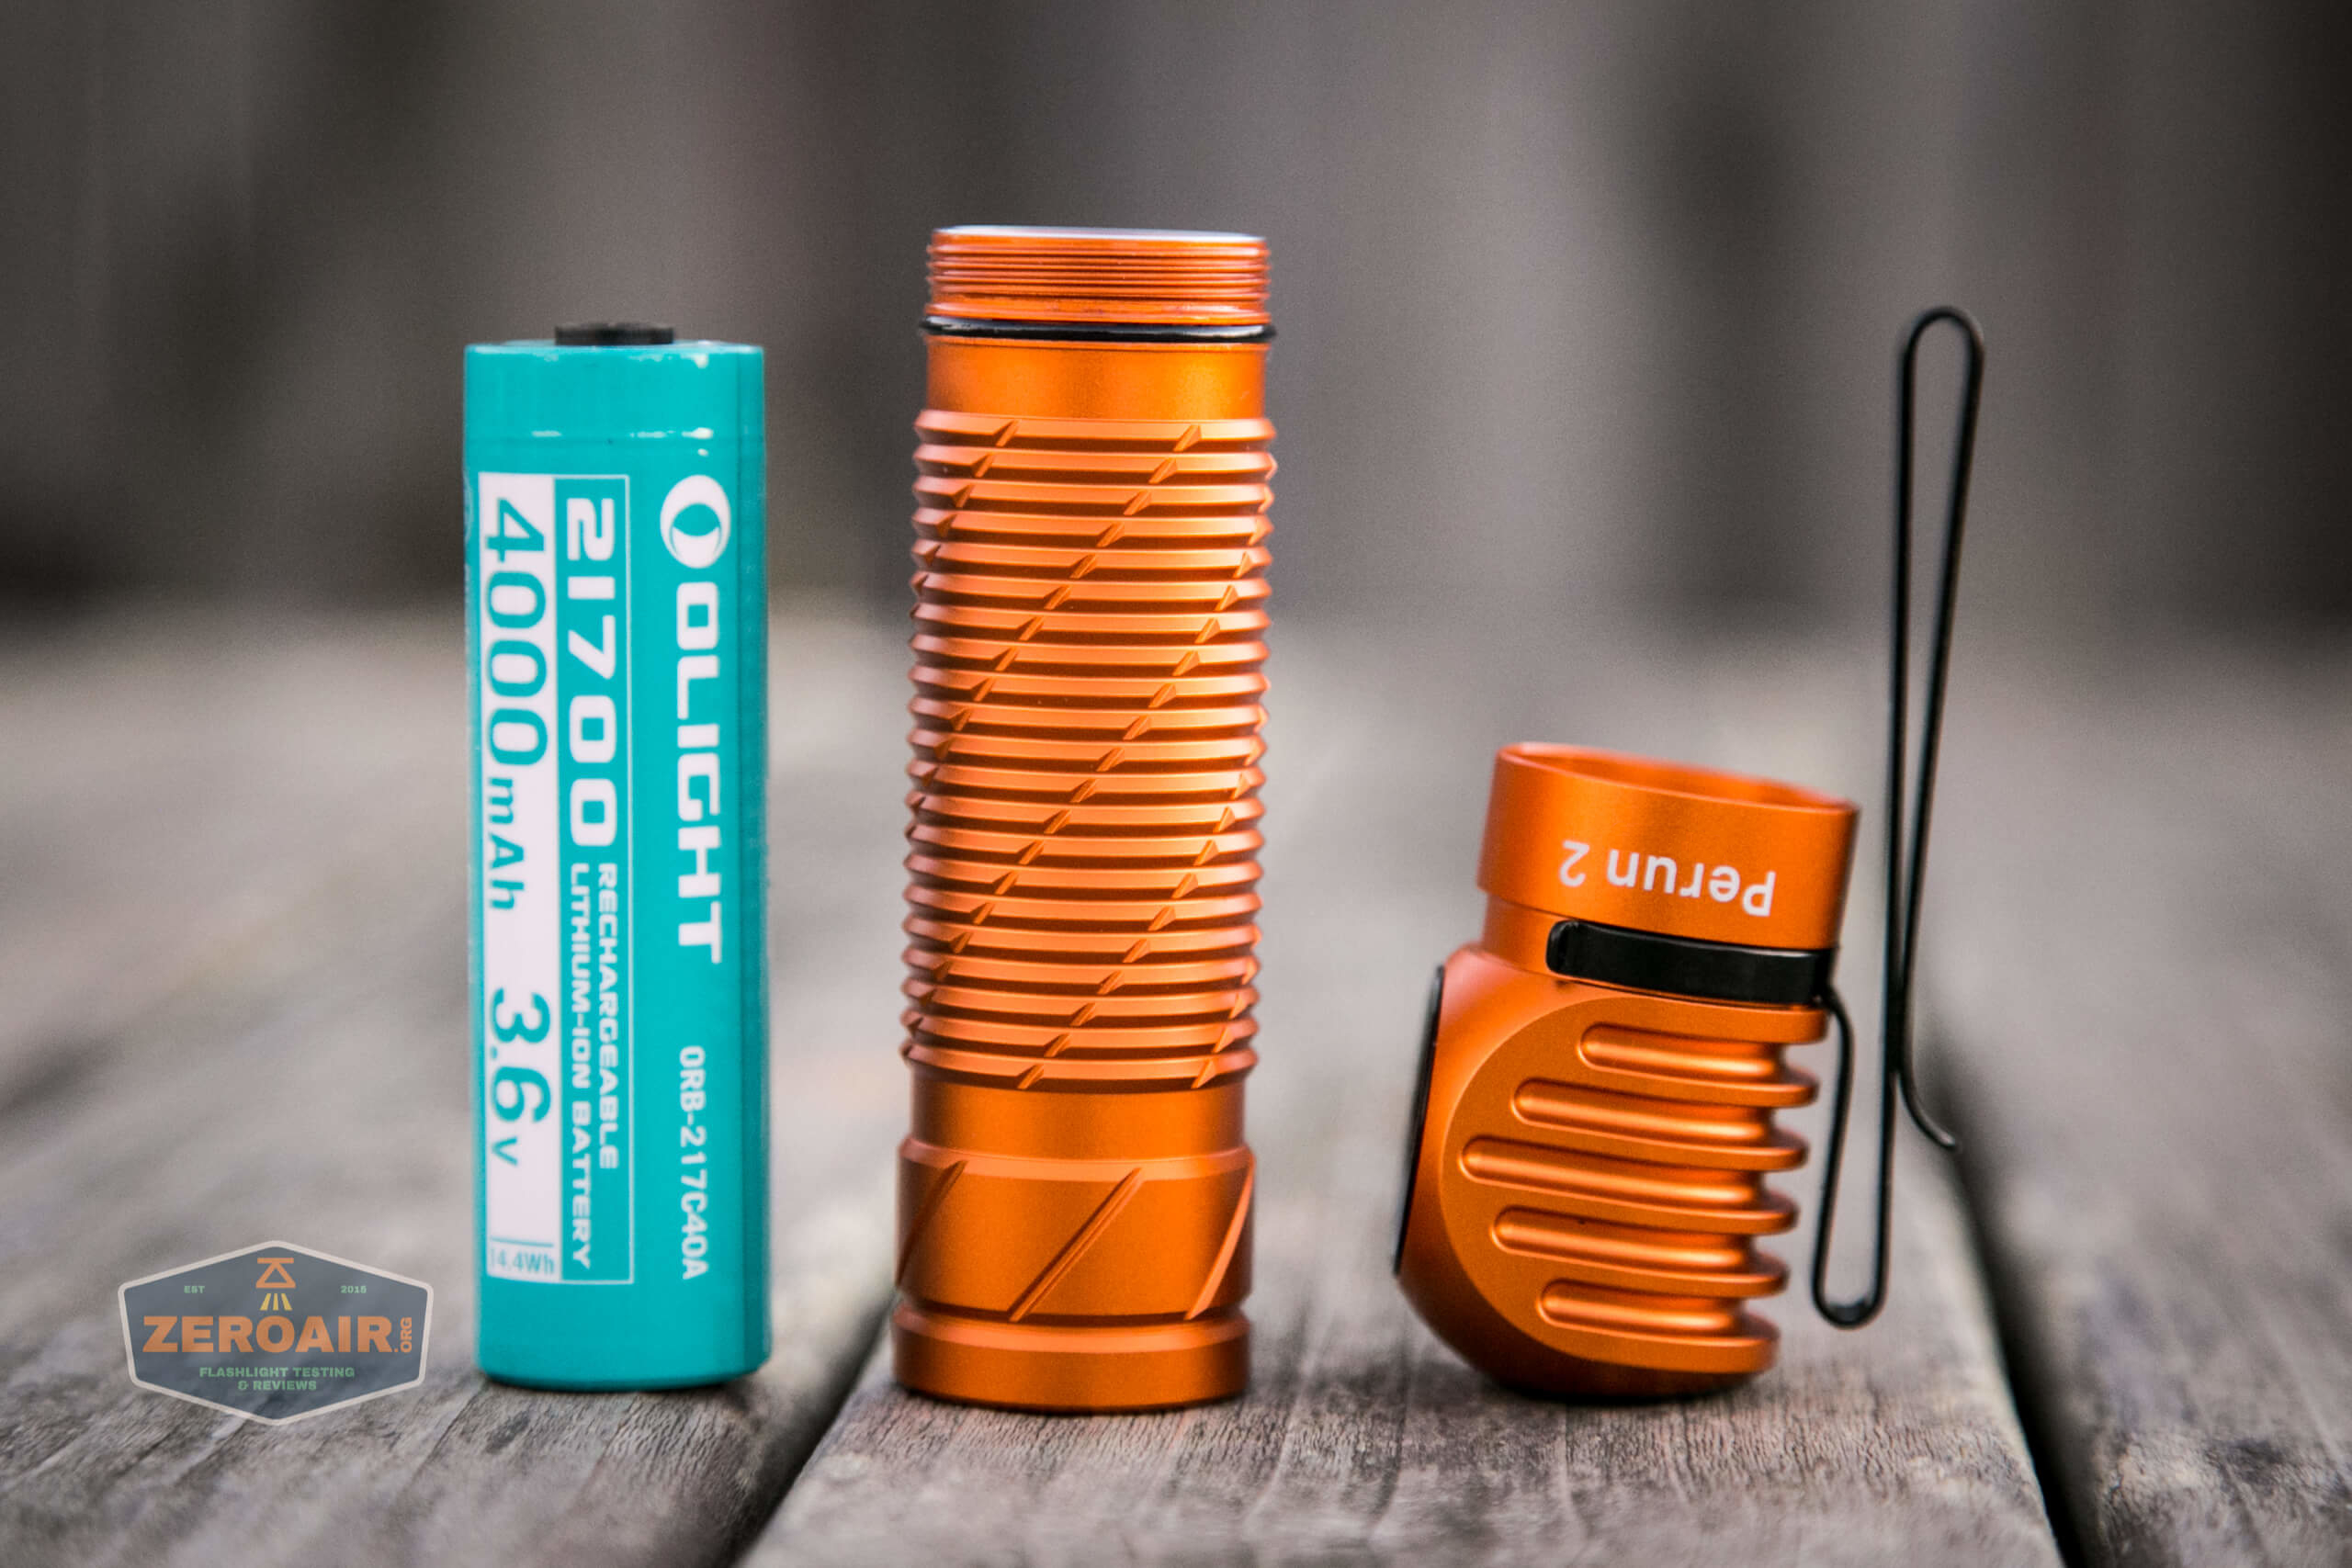 olight perun 2 21700 headlamp orange head off and cell out